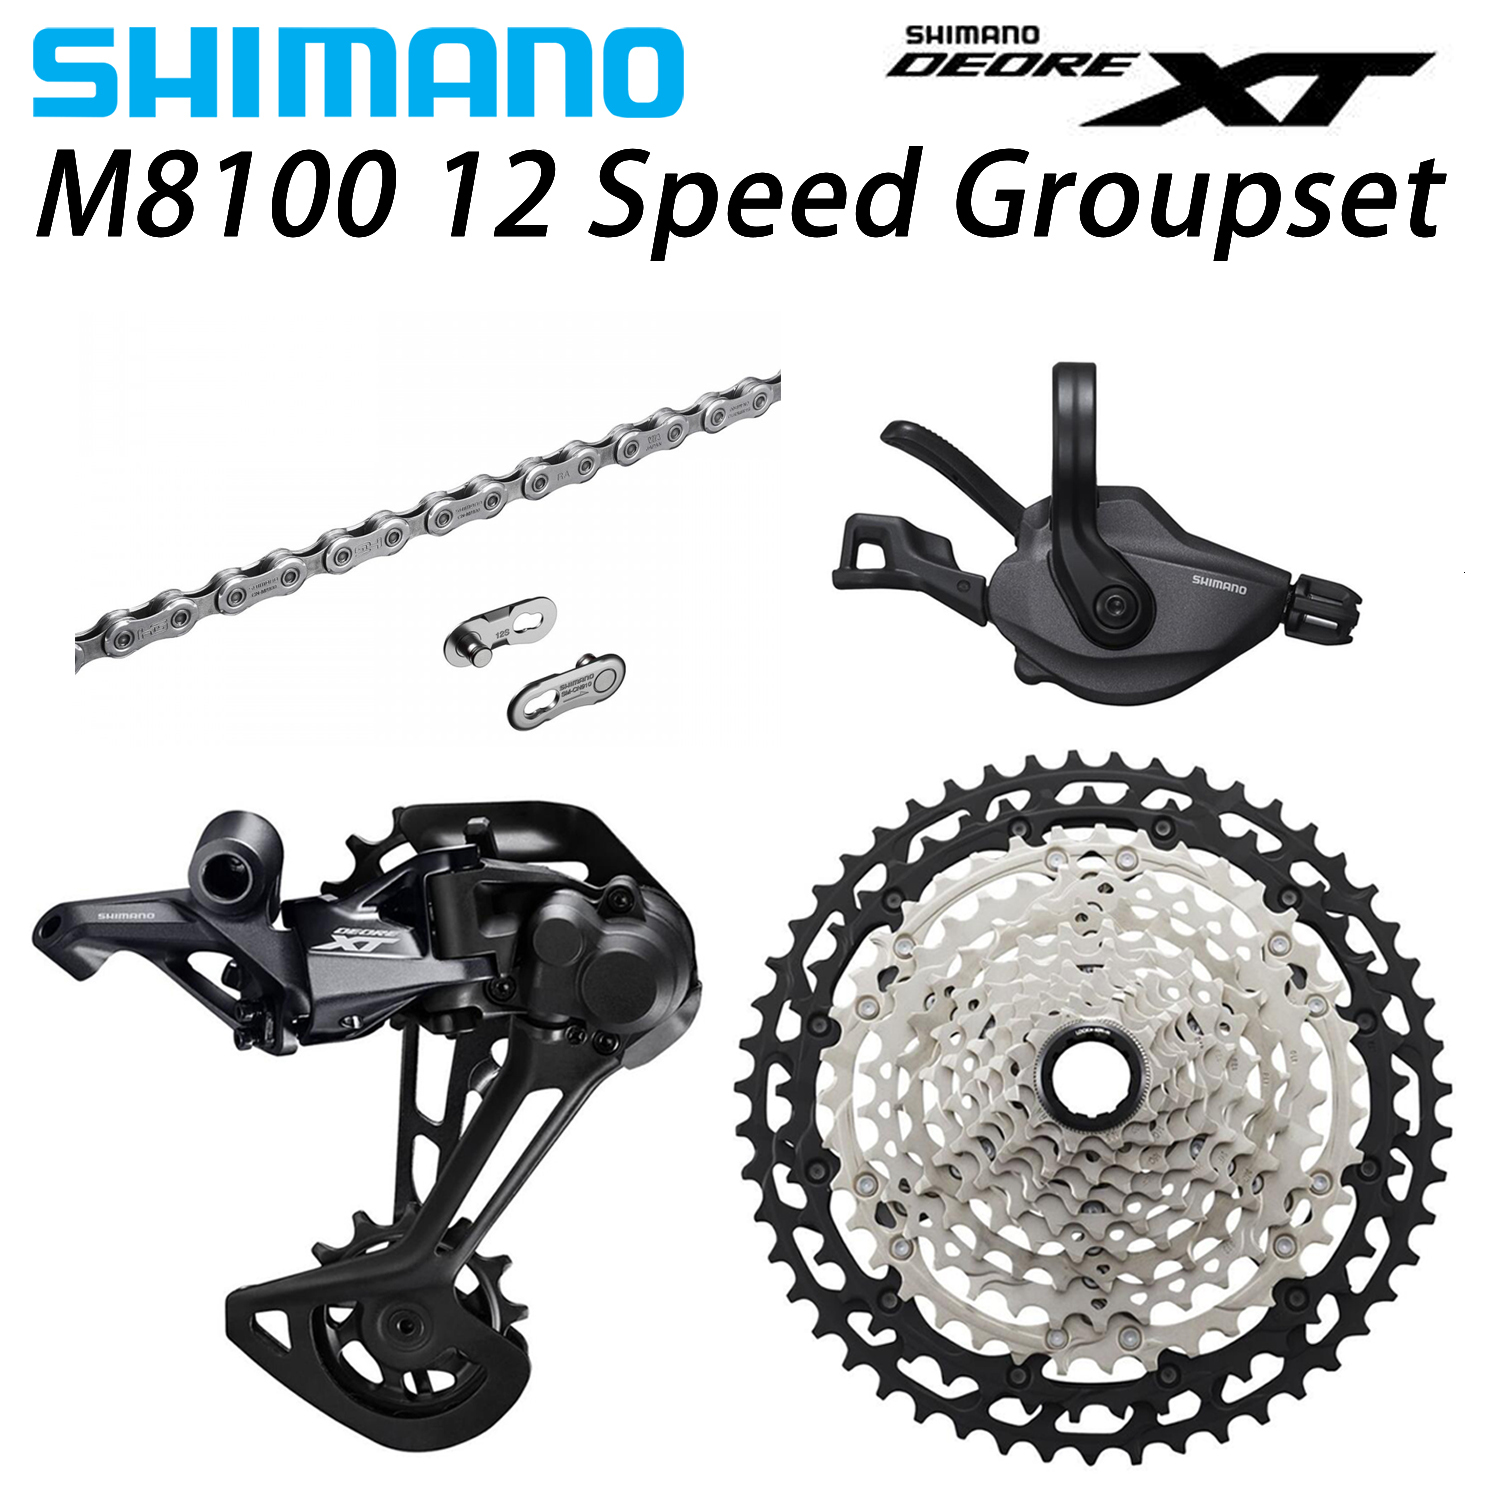 SHIMANO DEORE <font><b>XT</b></font> <font><b>M8100</b></font> Groupset MTB Mountain Bike 1x12-Speed 51T SL+RD+CS+HG <font><b>M8100</b></font> shifter Rear Derailleur image